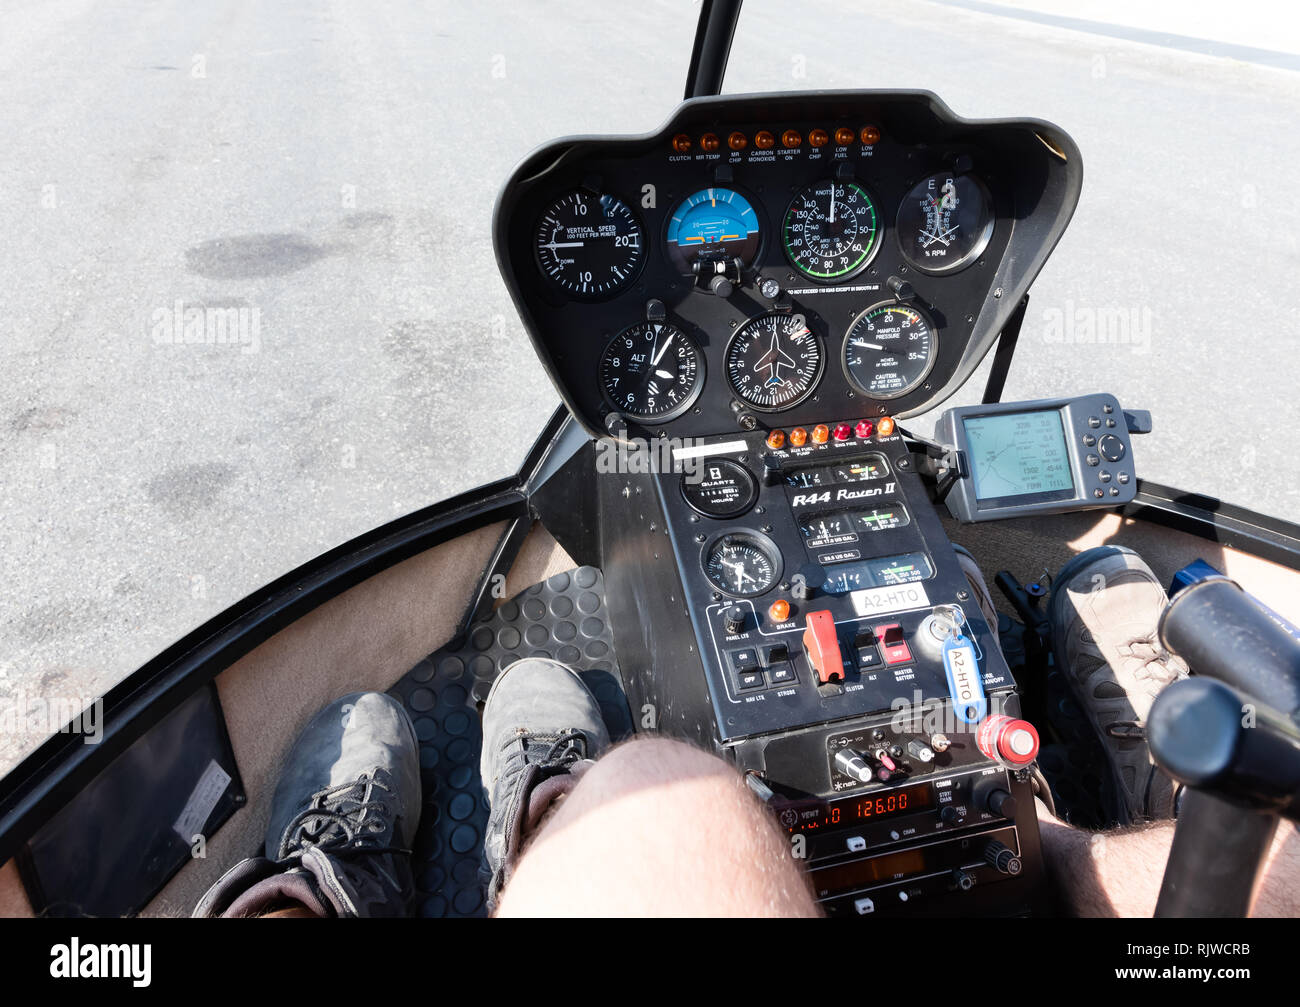 Wide view, a cockpit of a small helicopter, a control panel and a